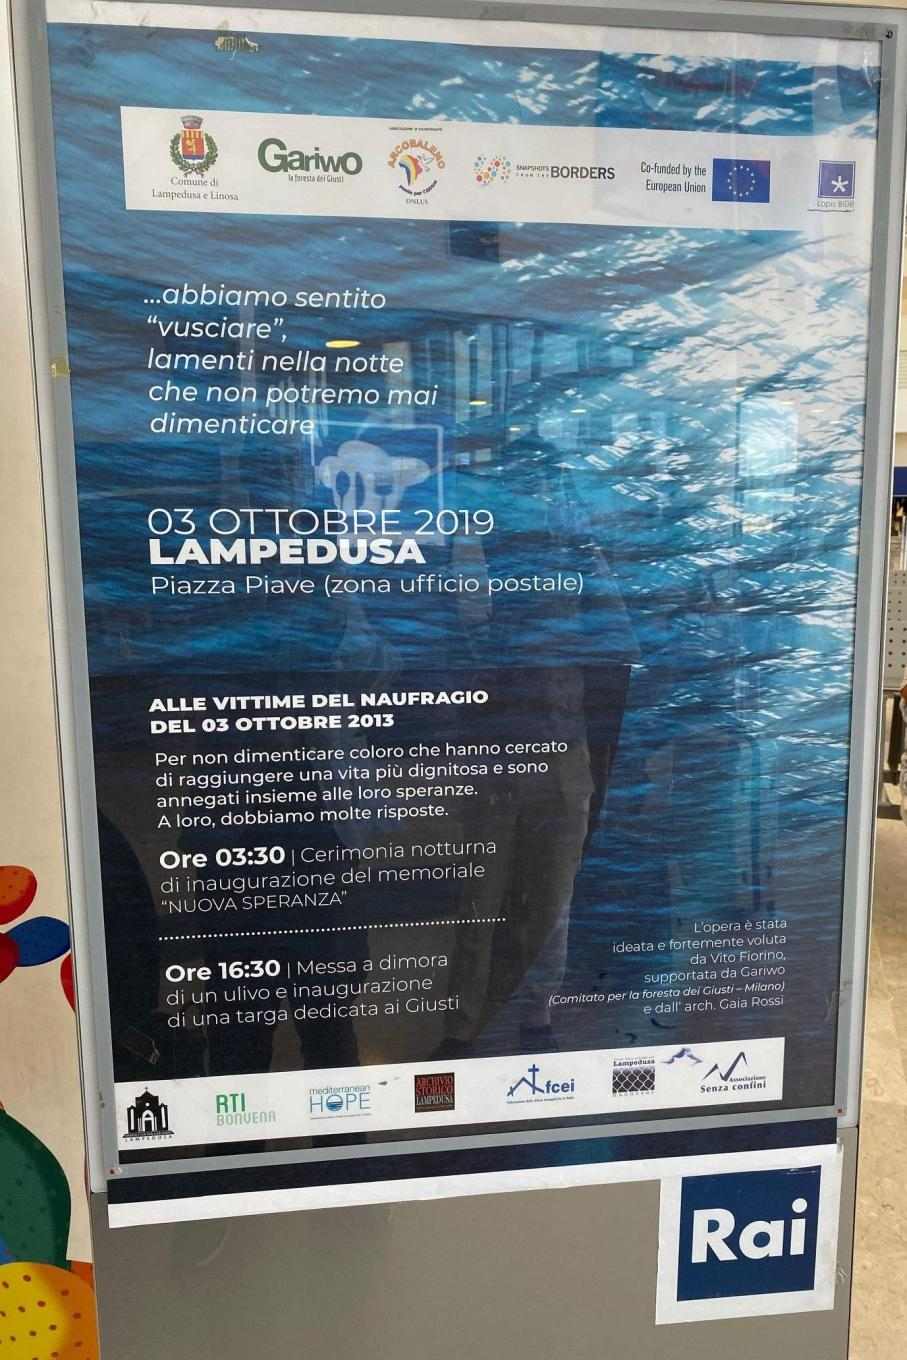 The poster of the initiative